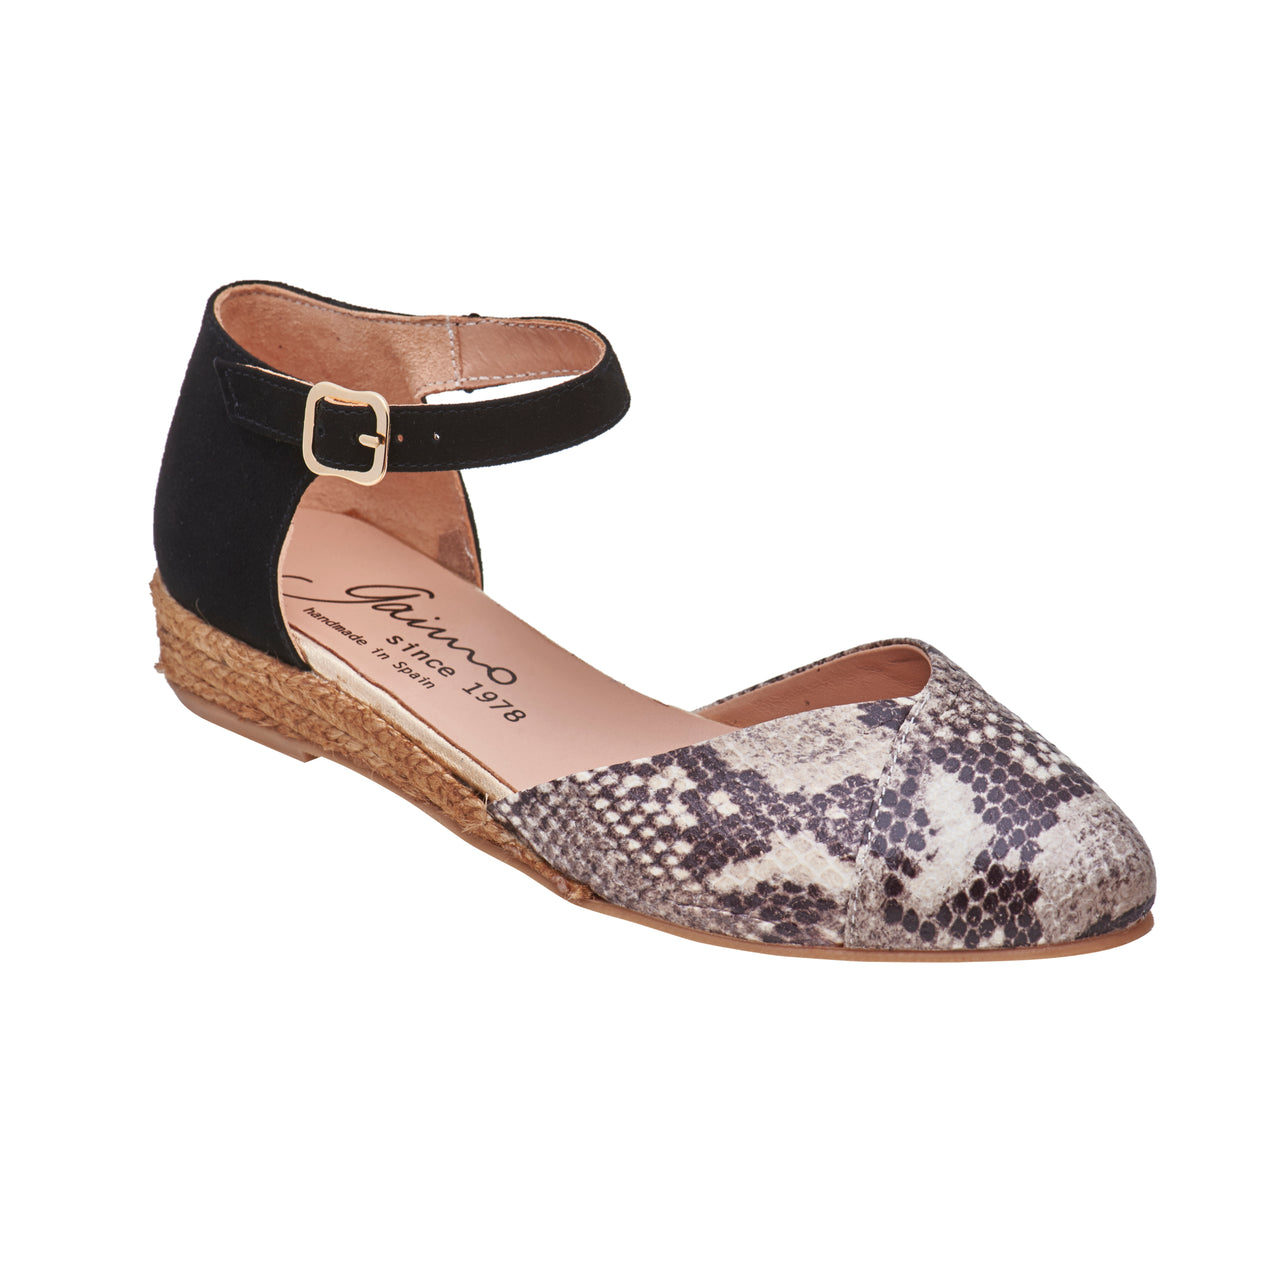 YANA Python Effect Leather espadrilles [sizes 35, 37, 41 available]